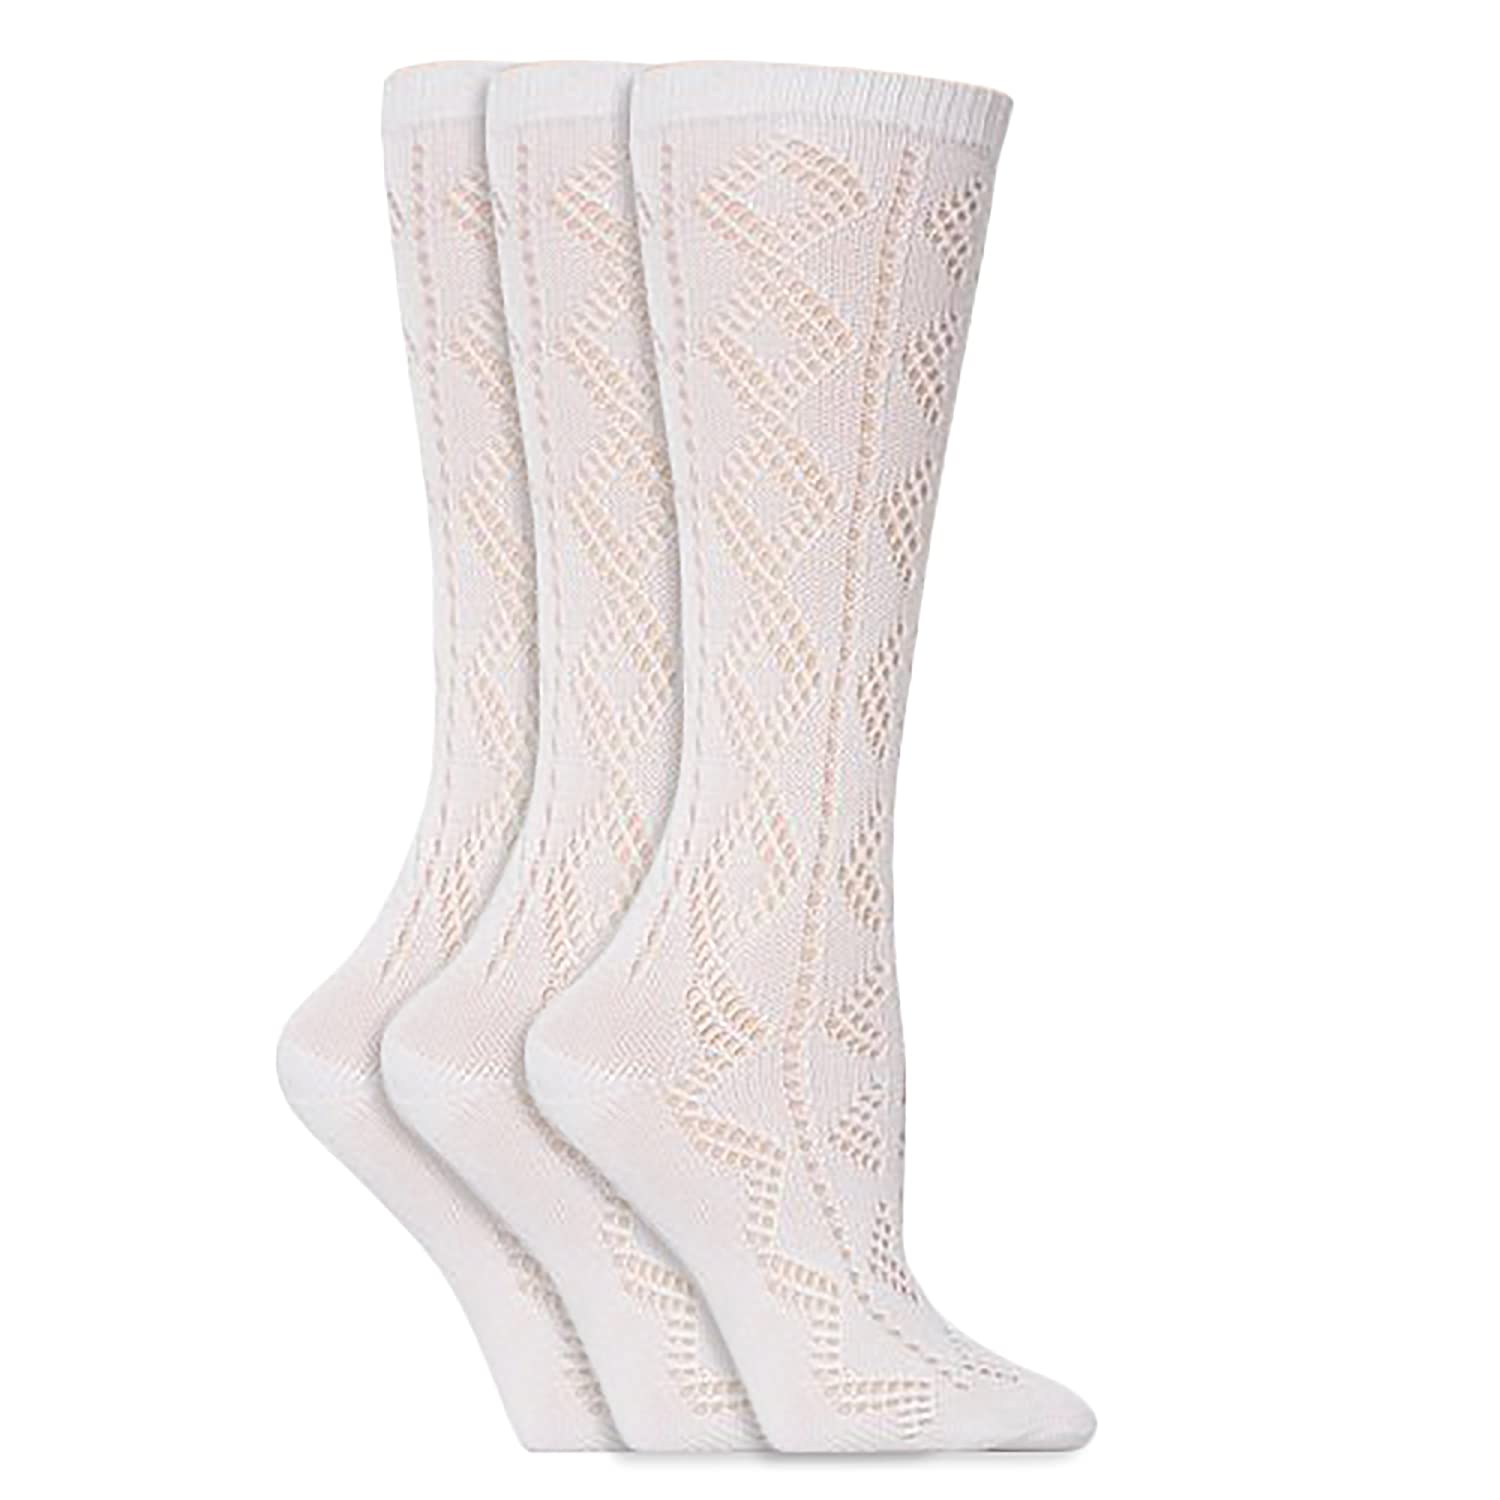 Girls White Knee High Pelerine School Socks (Pack Of 3) Universal Textiles